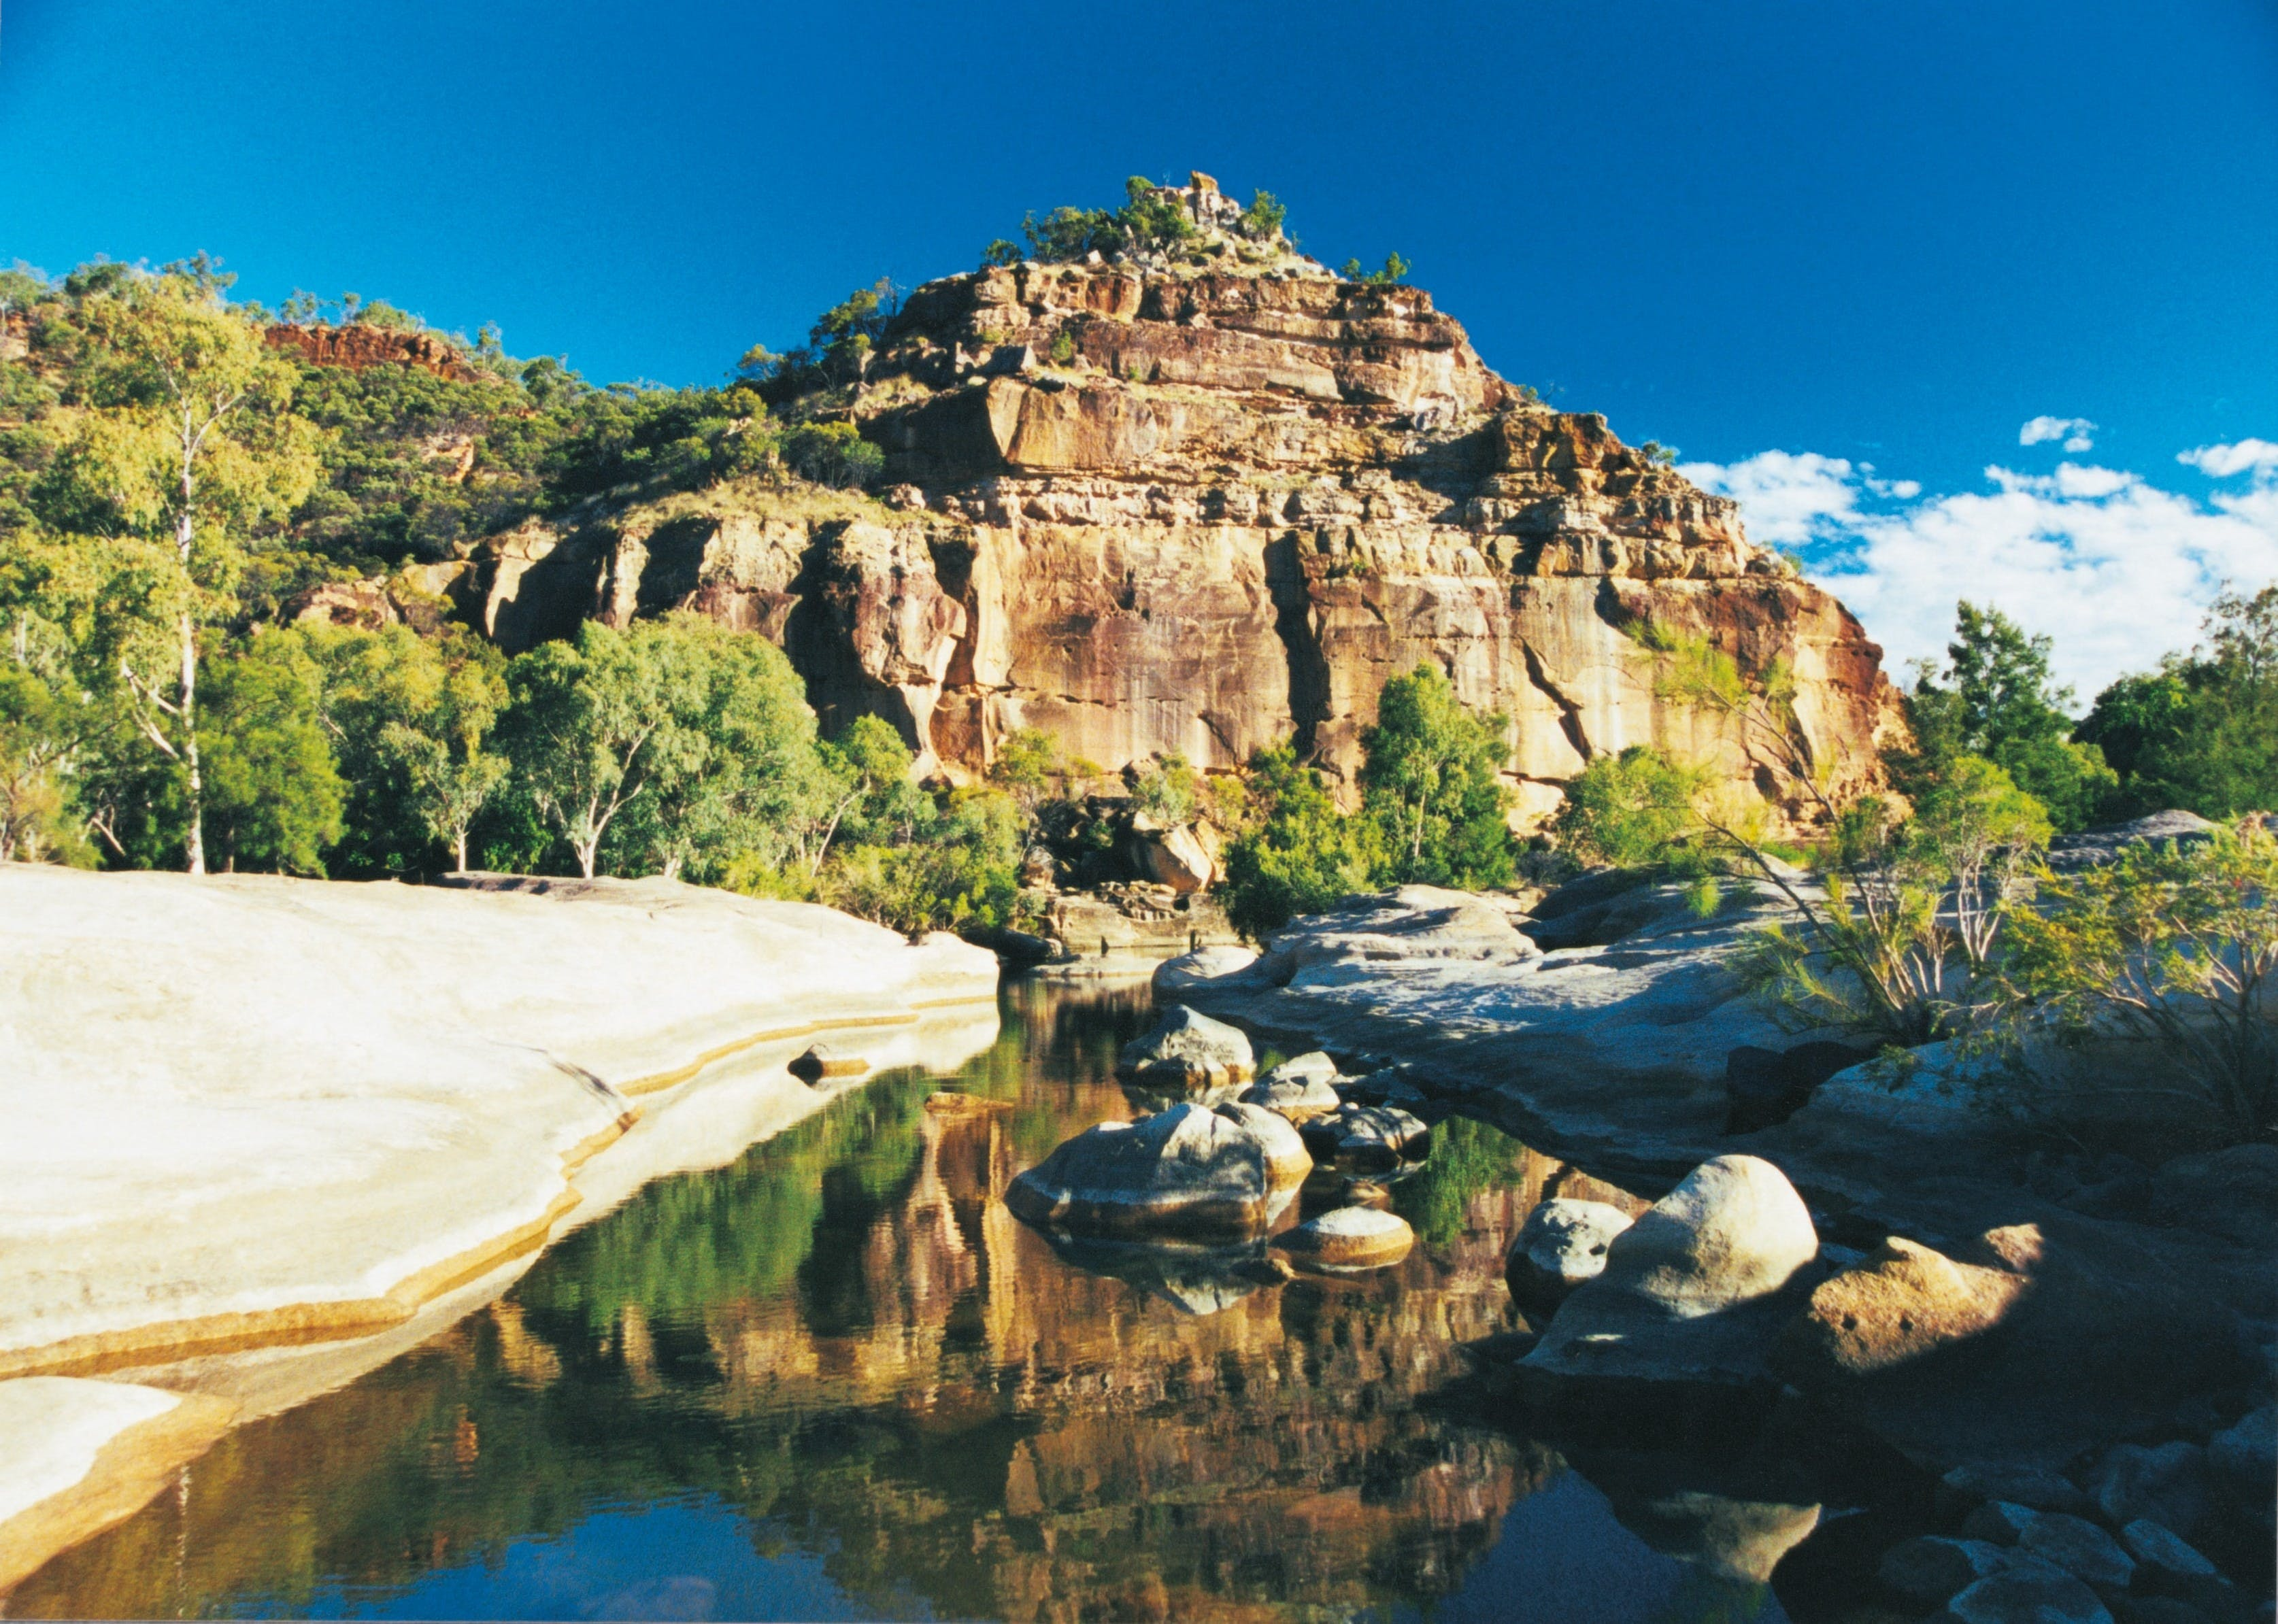 Porcupine Gorge National Park - Accommodation Melbourne